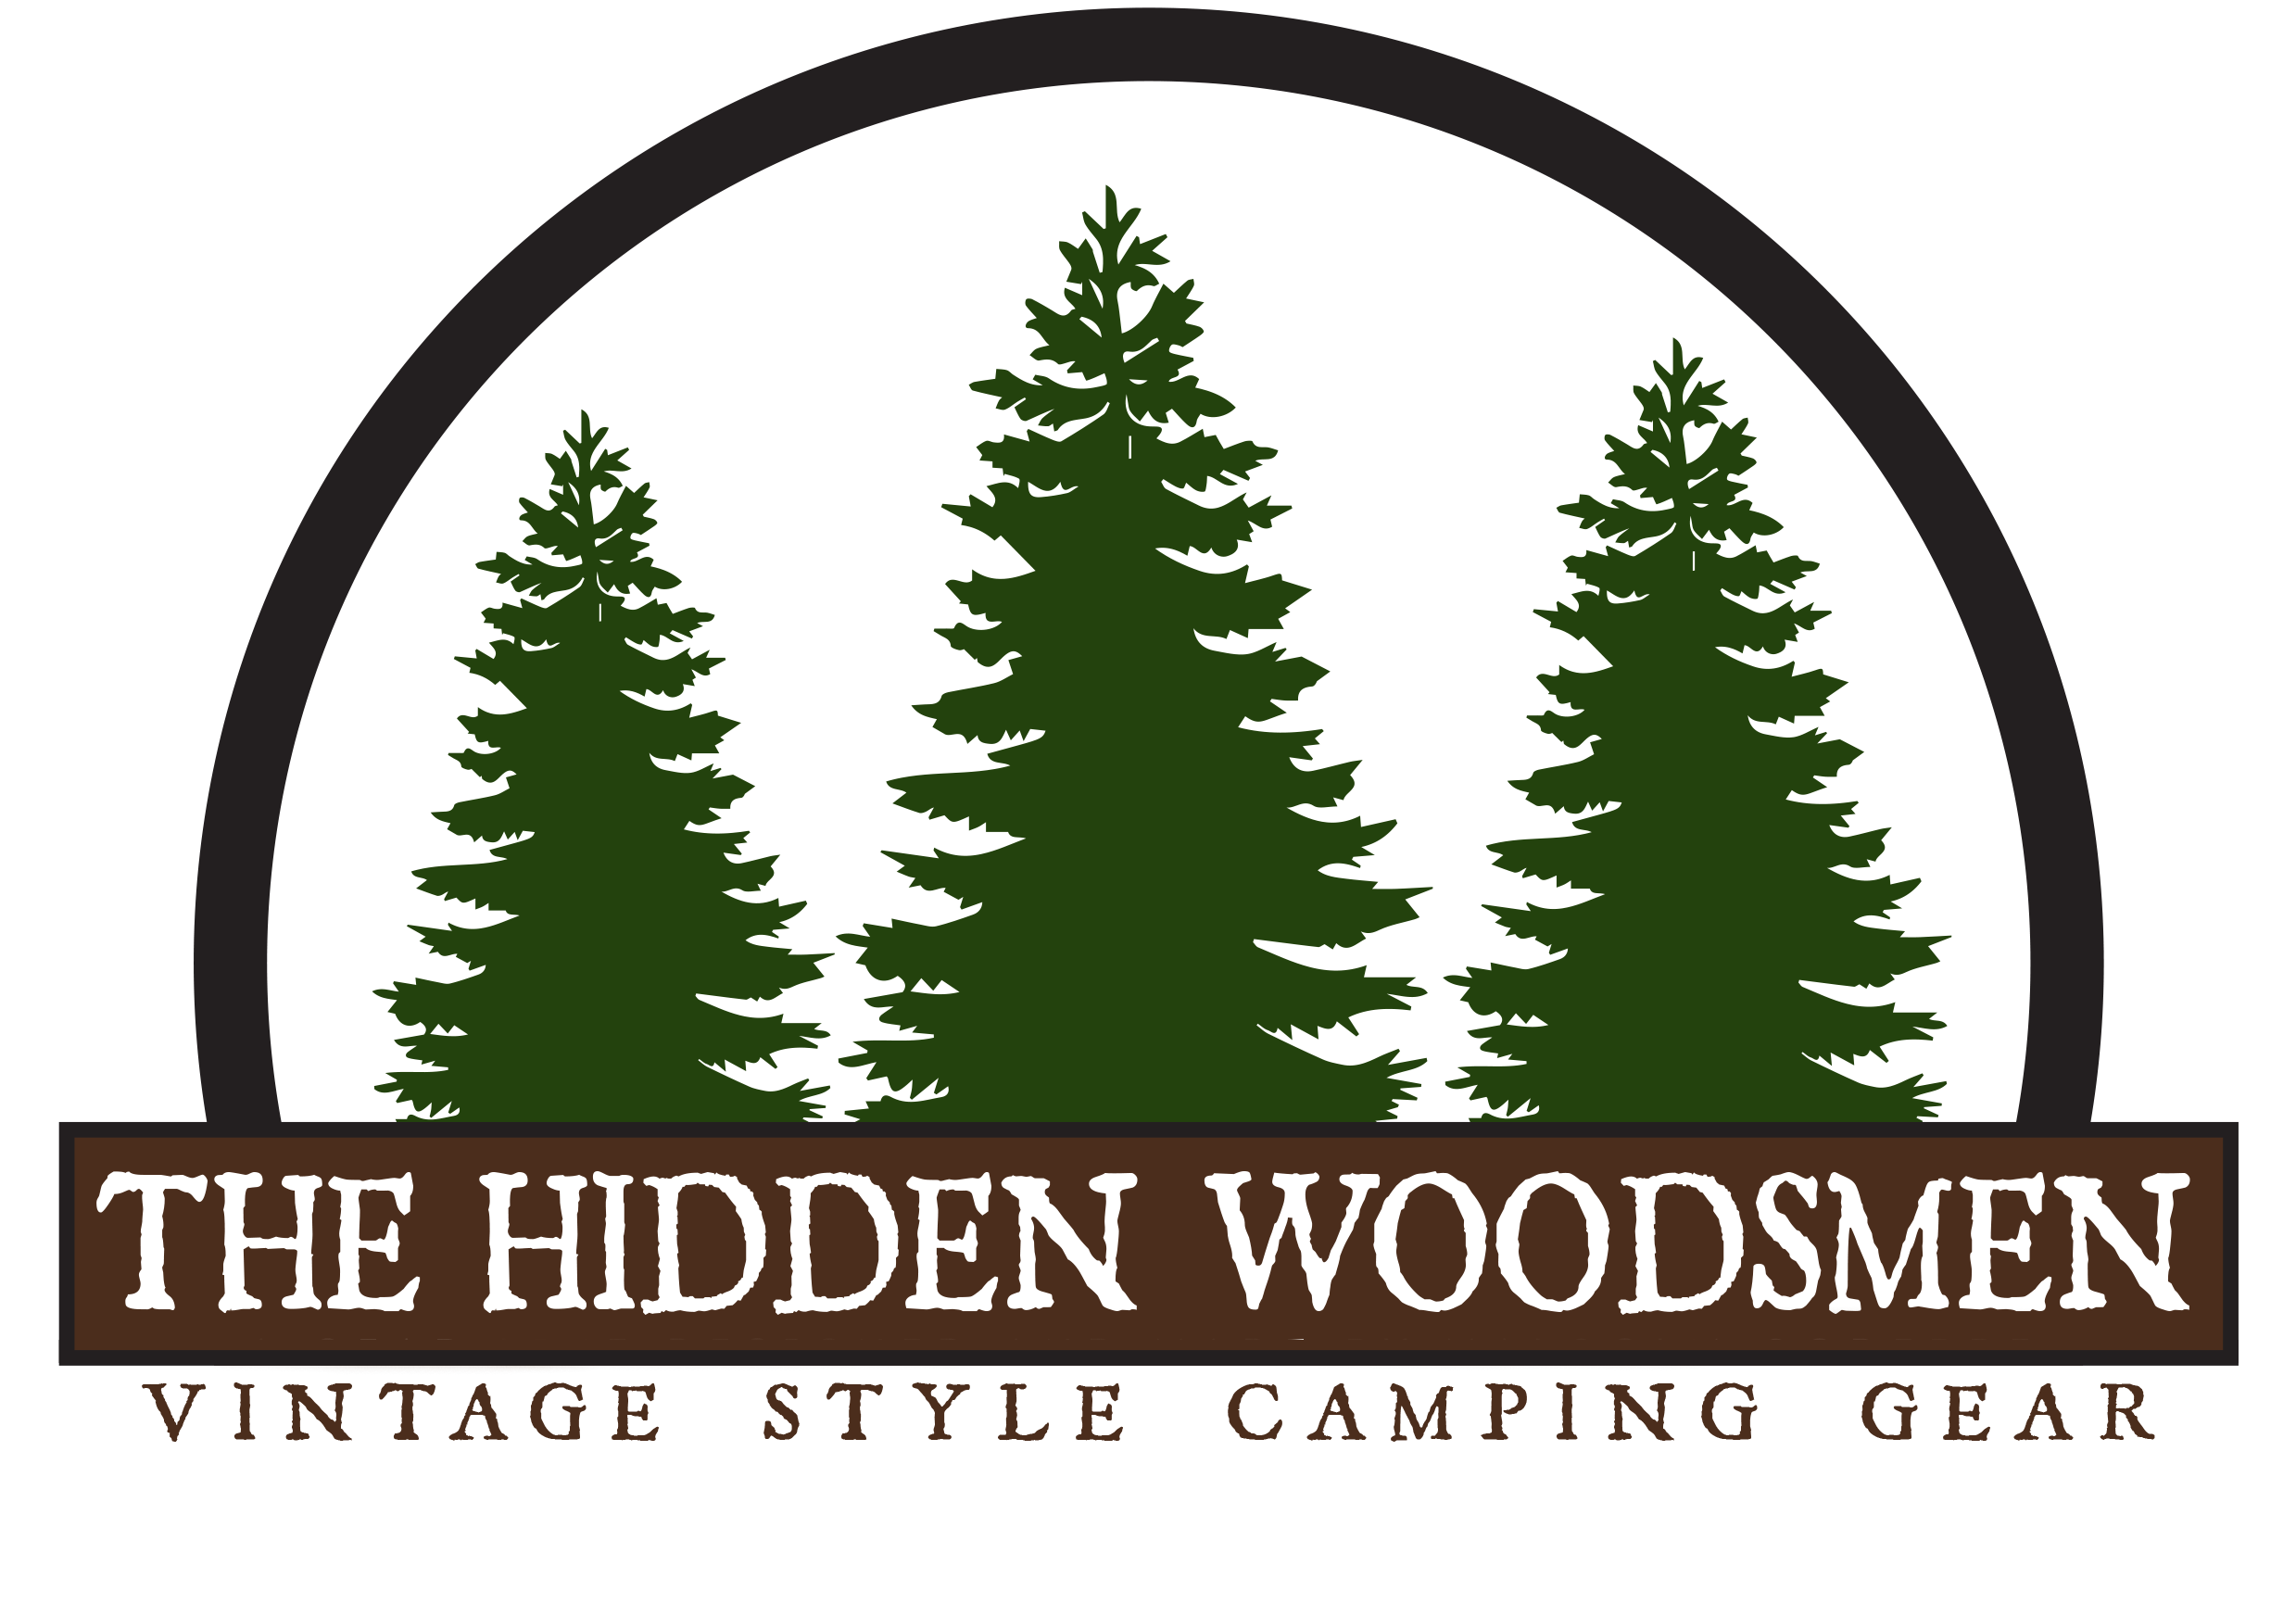 The Hidden Woodsmen